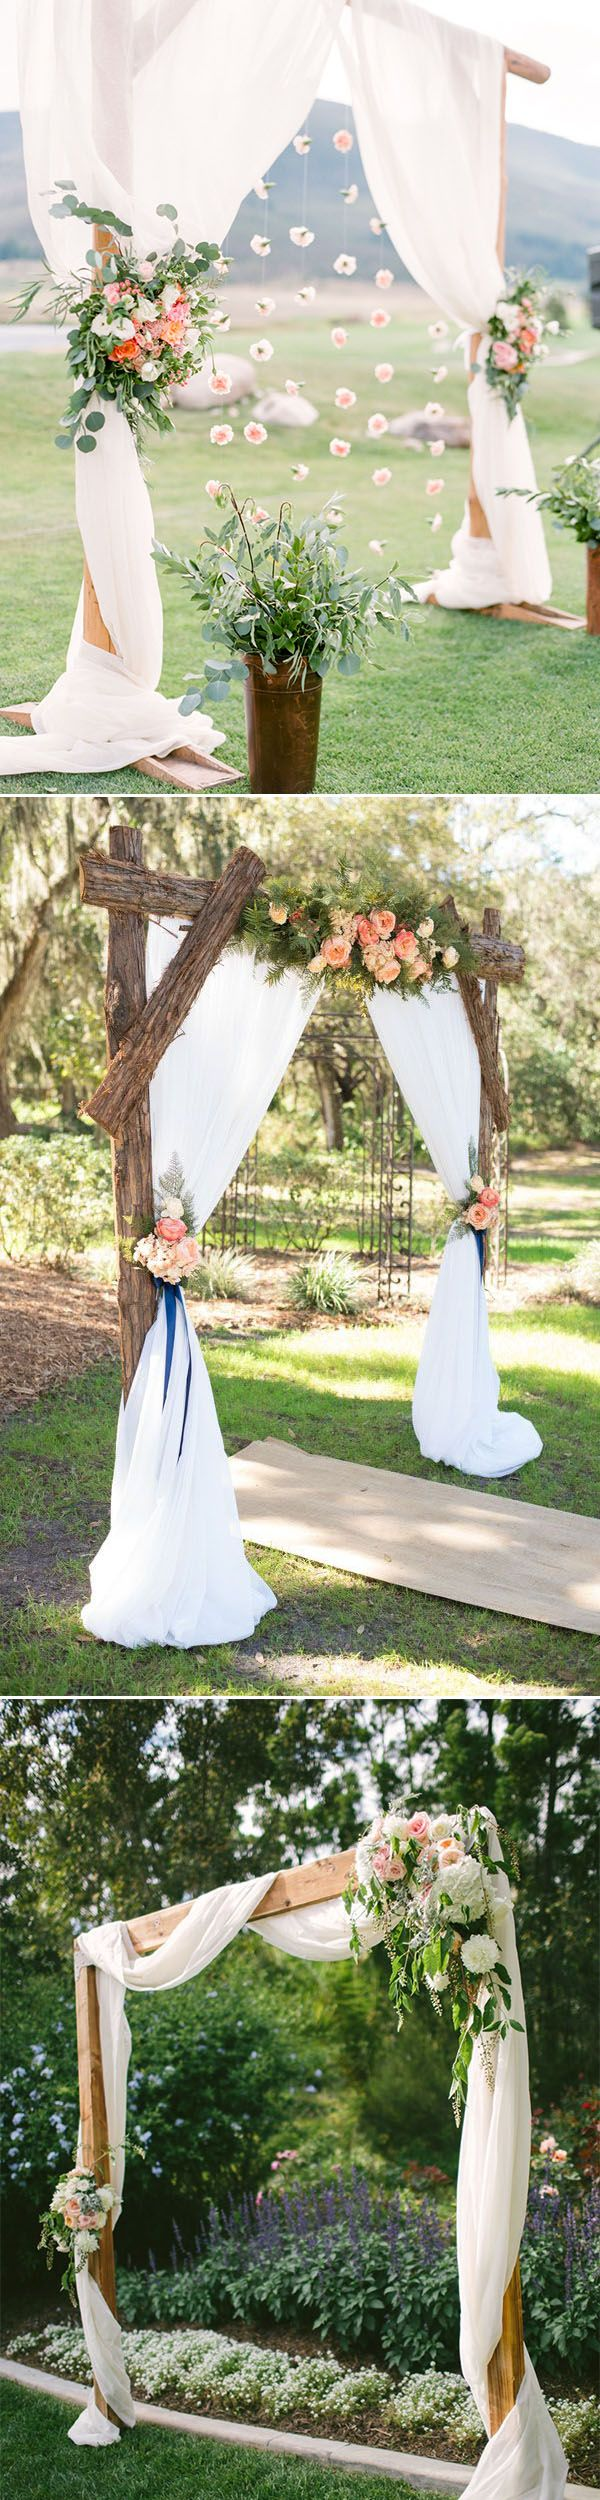 30 best floral wedding altars arches decorating ideas casamento 30 best floral wedding altars arches decorating ideas junglespirit Choice Image